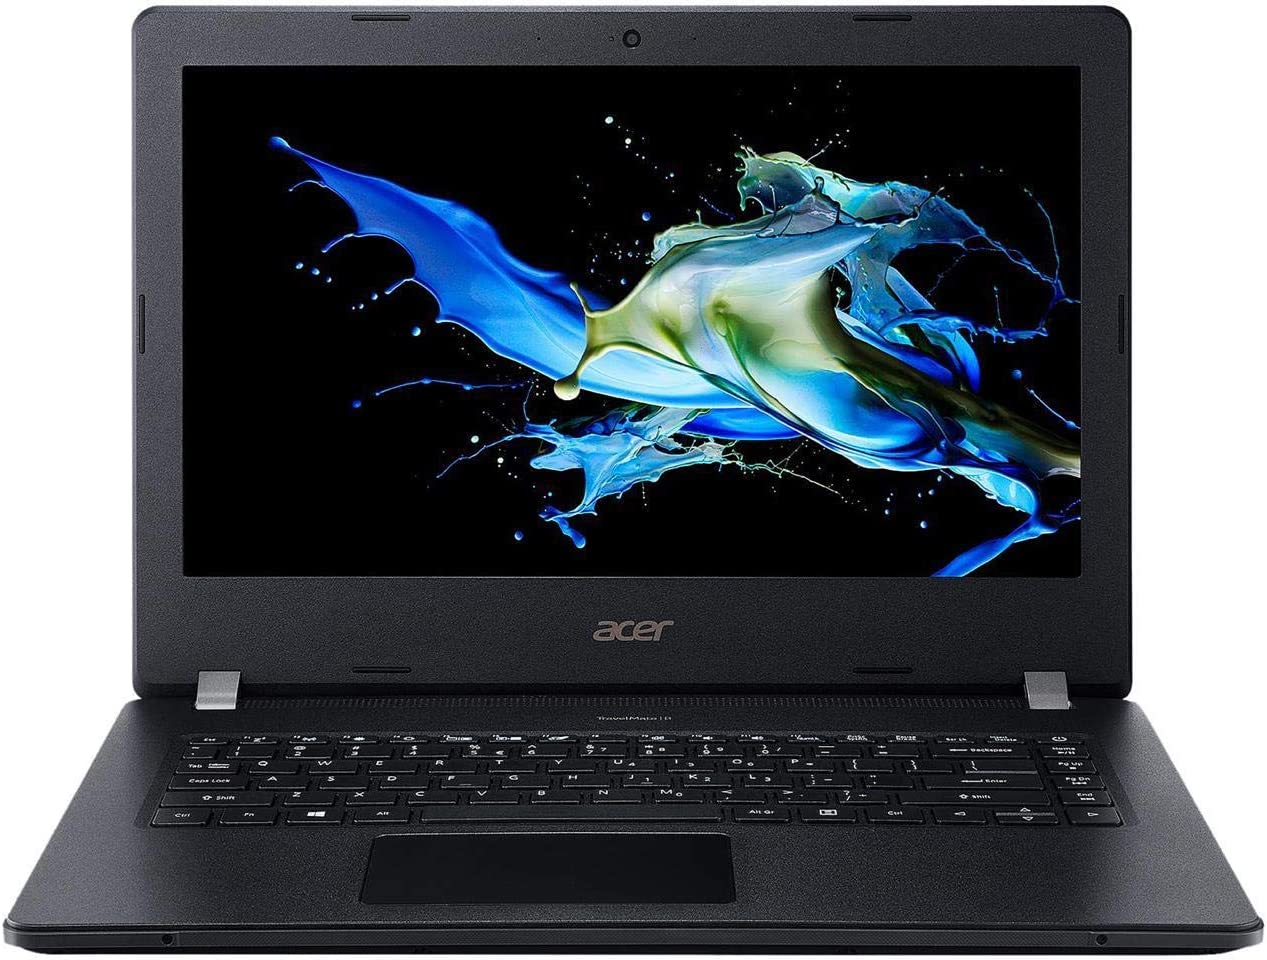 "Acer TravelMate B1 B114-21 TMB114-21-4434 14"" Notebook 1366 x 768 A-Series A4-9120C 4GB RAM 64GB Flash Memory Model NX.VK4AA.001"